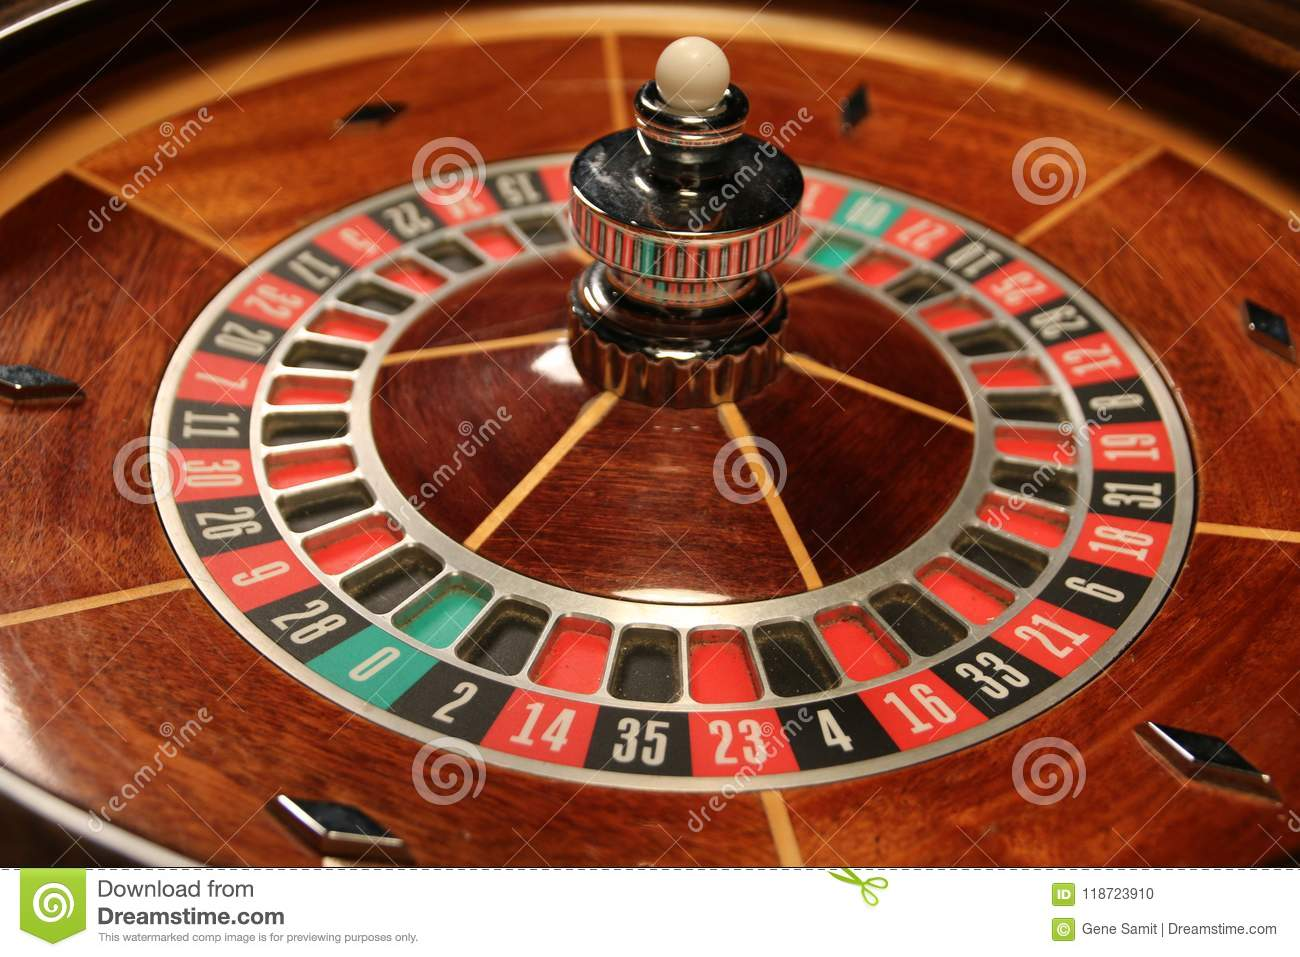 Place your bet casino best casino gambling internet